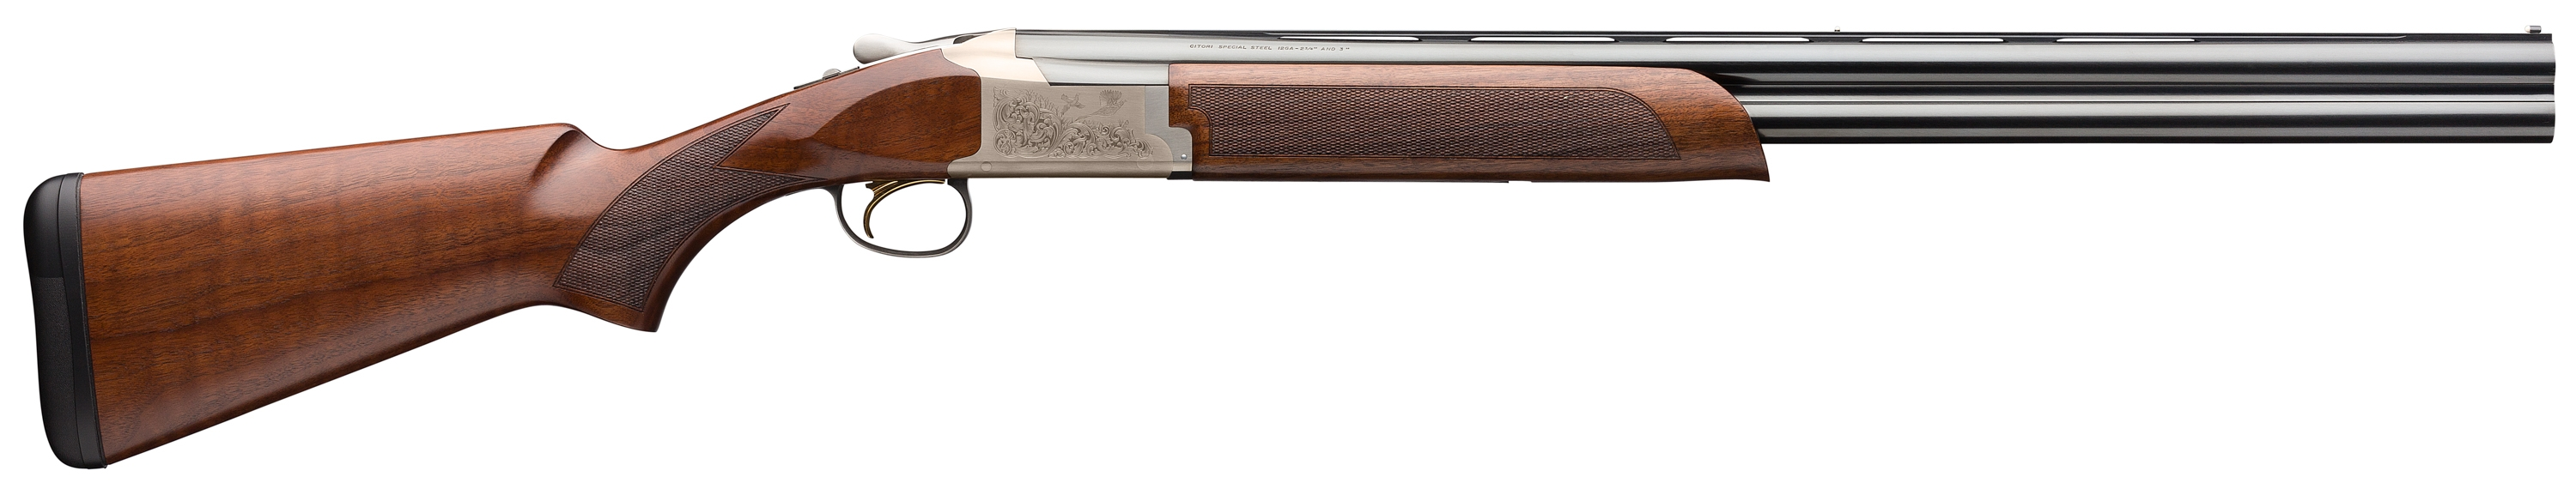 Browning Citori 725 Feather 12 Gauge